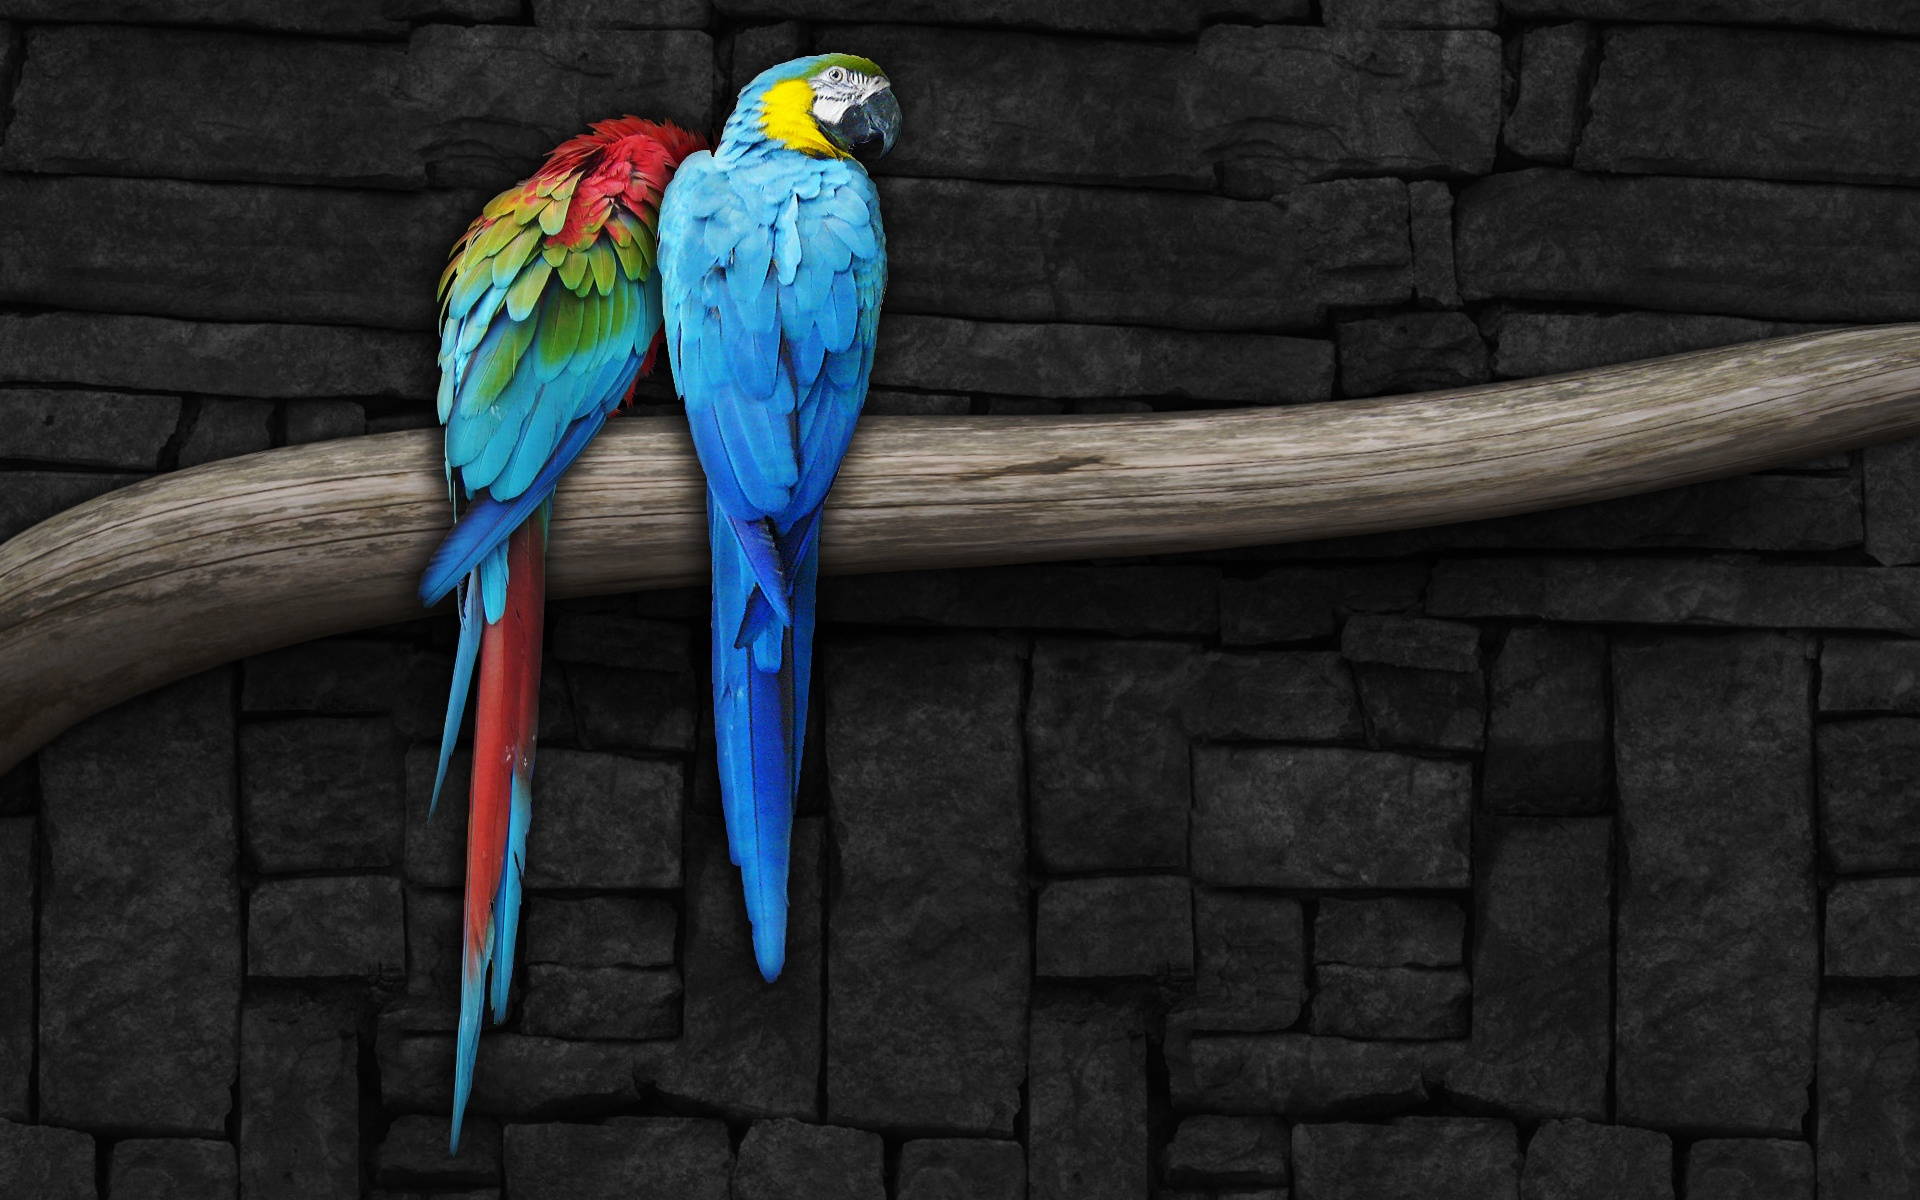 Pair of Parrots 192.47 Kb